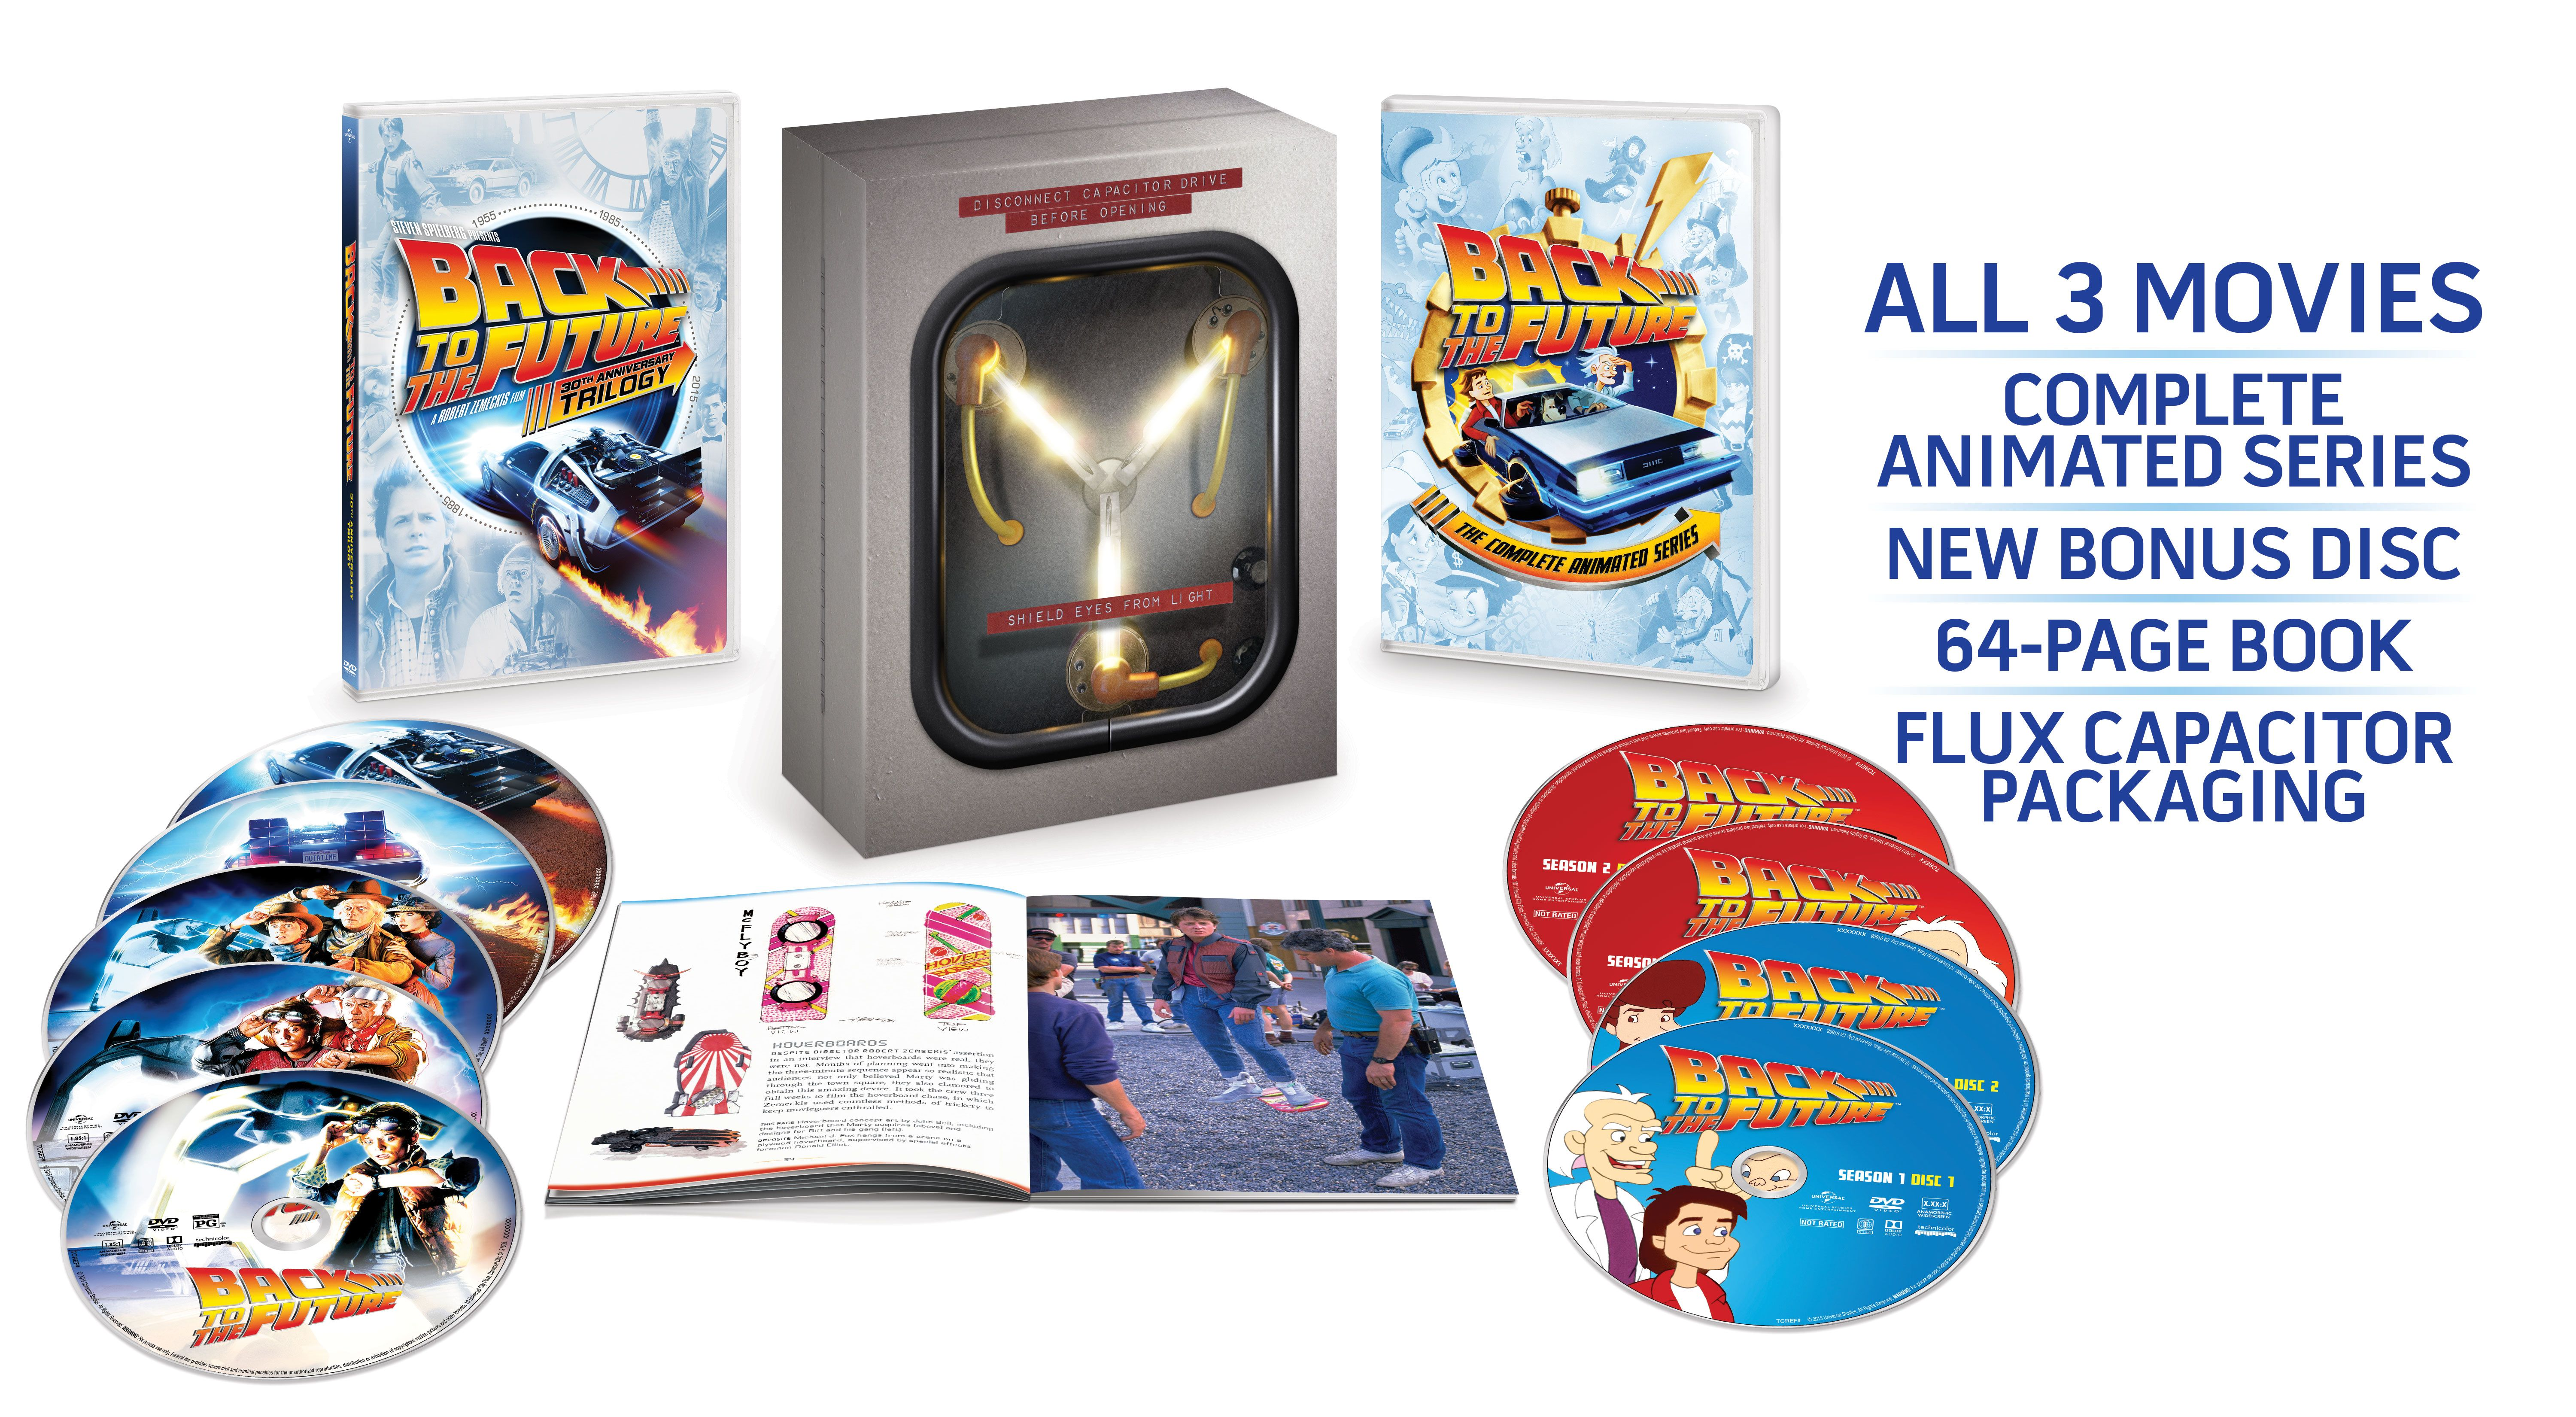 back-to-the-future-trilogy-30th-anniversary-blu-ray-flux-capacitor_0.jpg